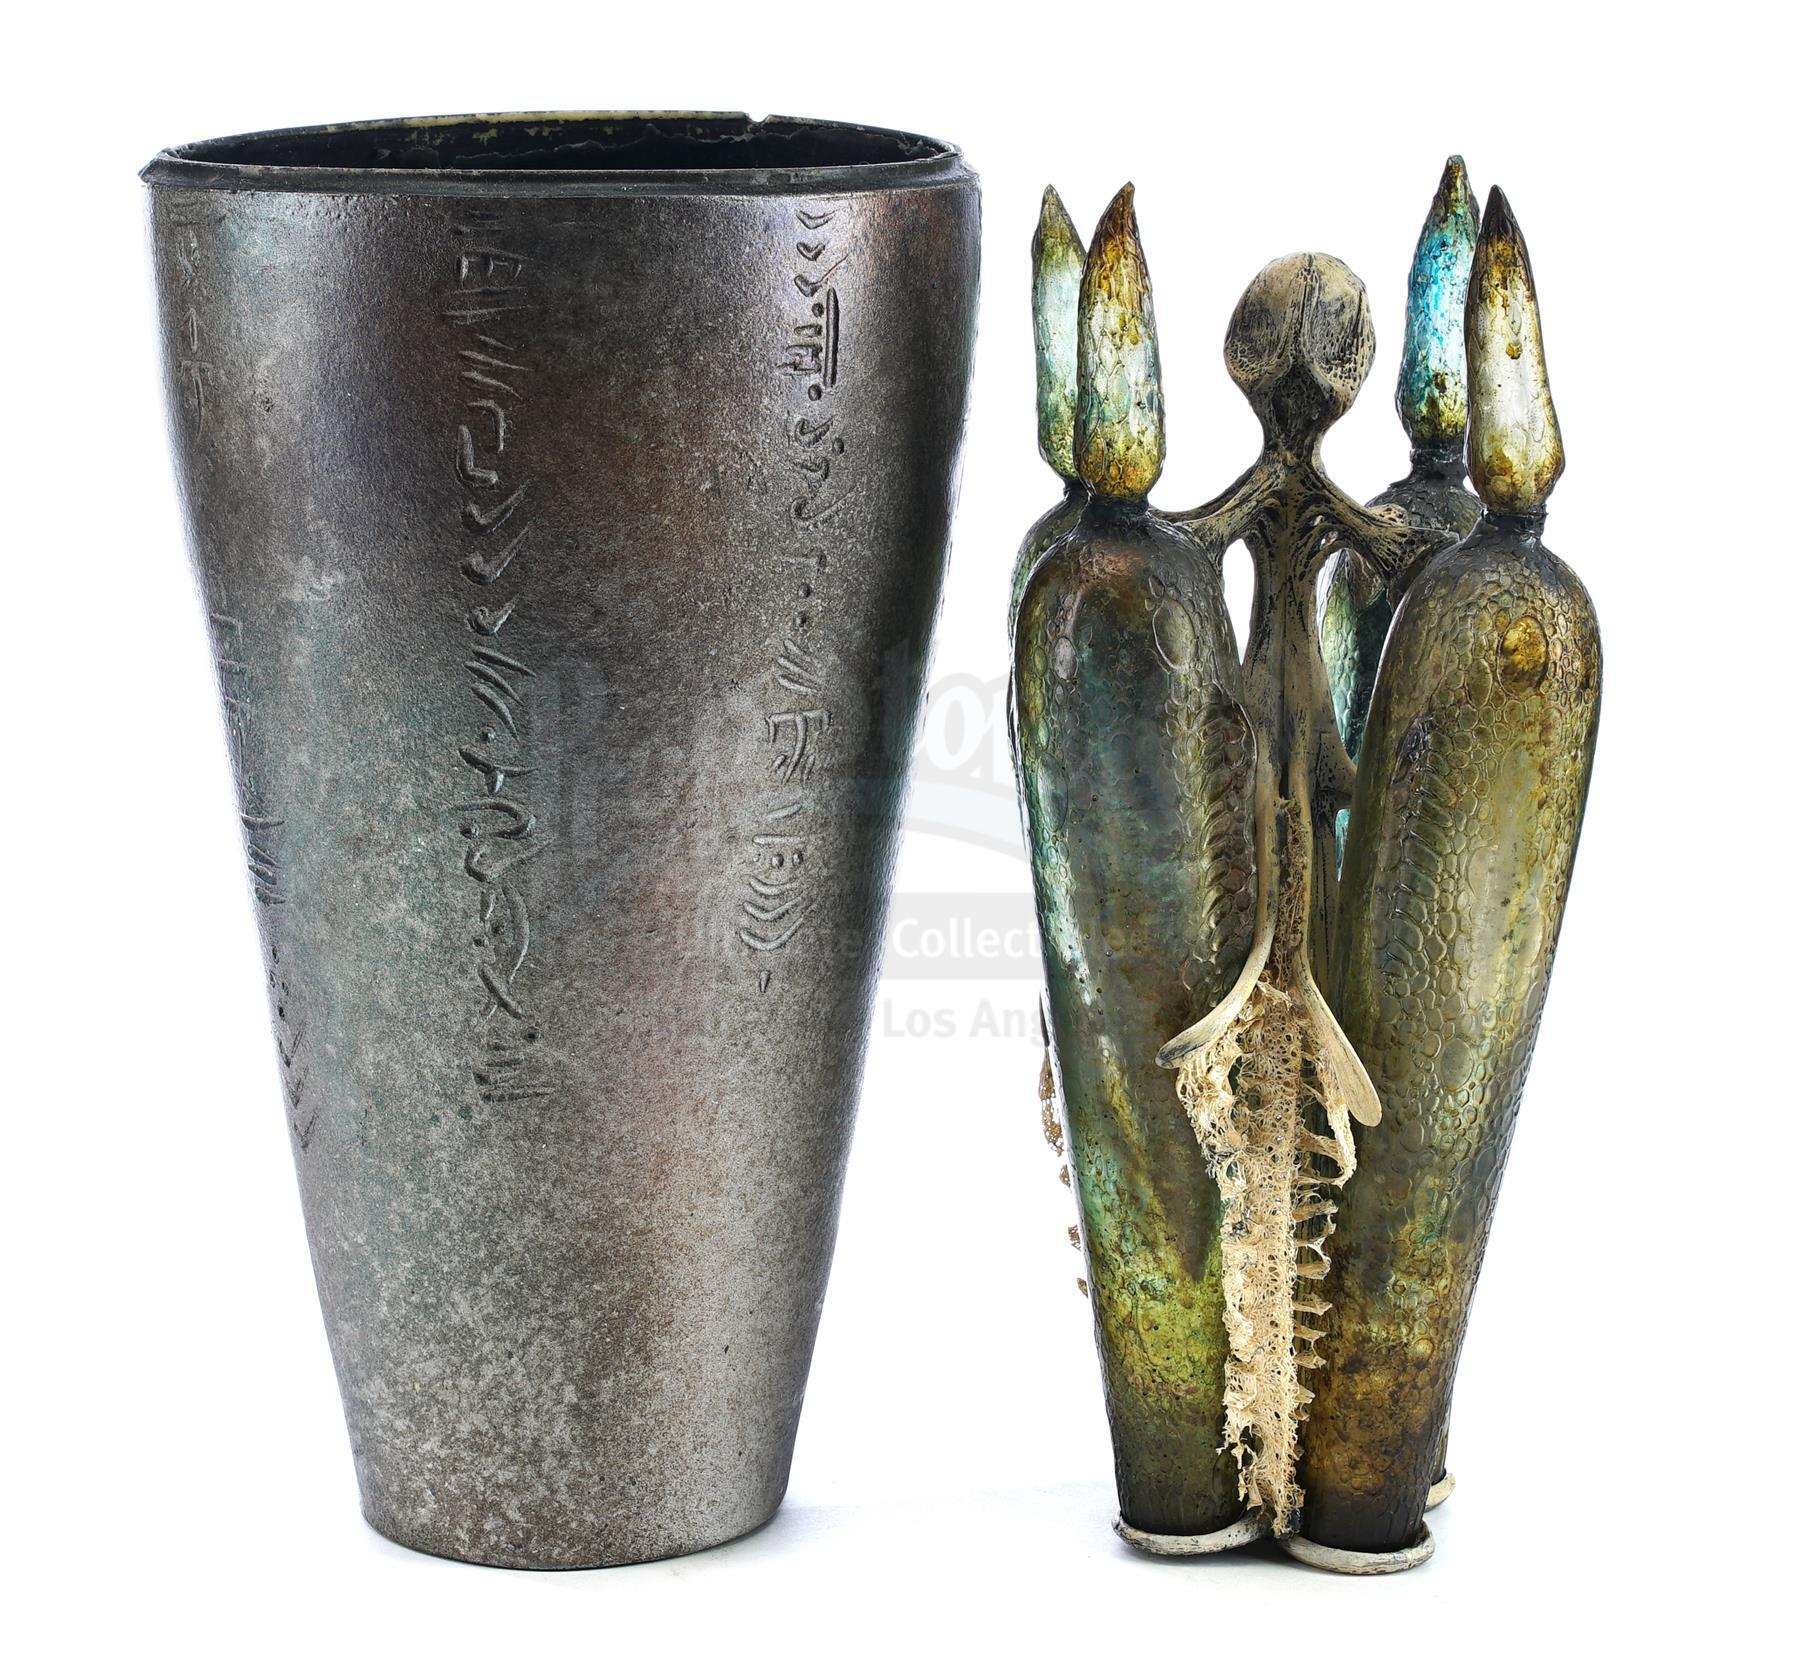 Lot # 214: PROMETHEUS - Engineer Ampule and Spore Containers